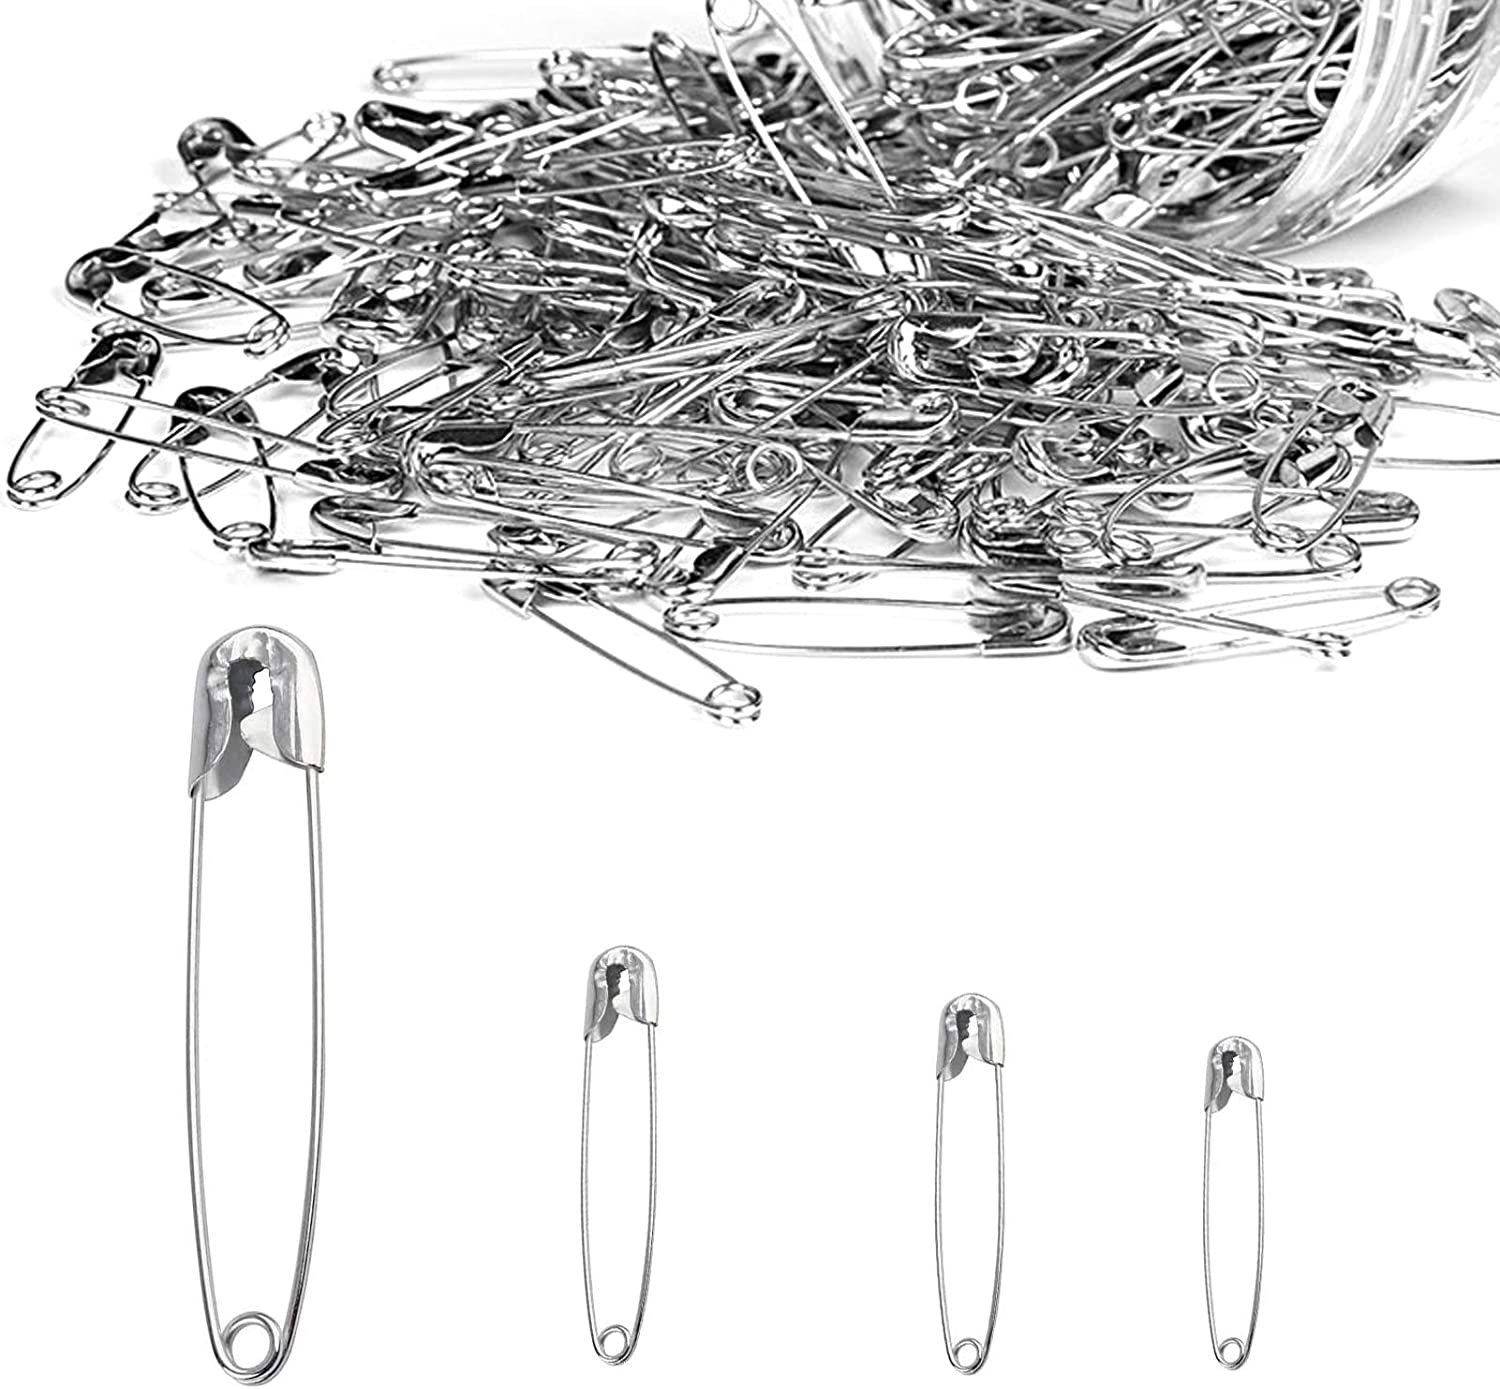 Safety Pins Assorted Sizes, Heavy Duty Large 2 Inch Safety Pins + Small 1 inch Safety Pins, for Quilting Sewing Fashion Home Office Use Cloths/Clothing Hijab Fabric Diaper Tags Crafts Jewelry Making